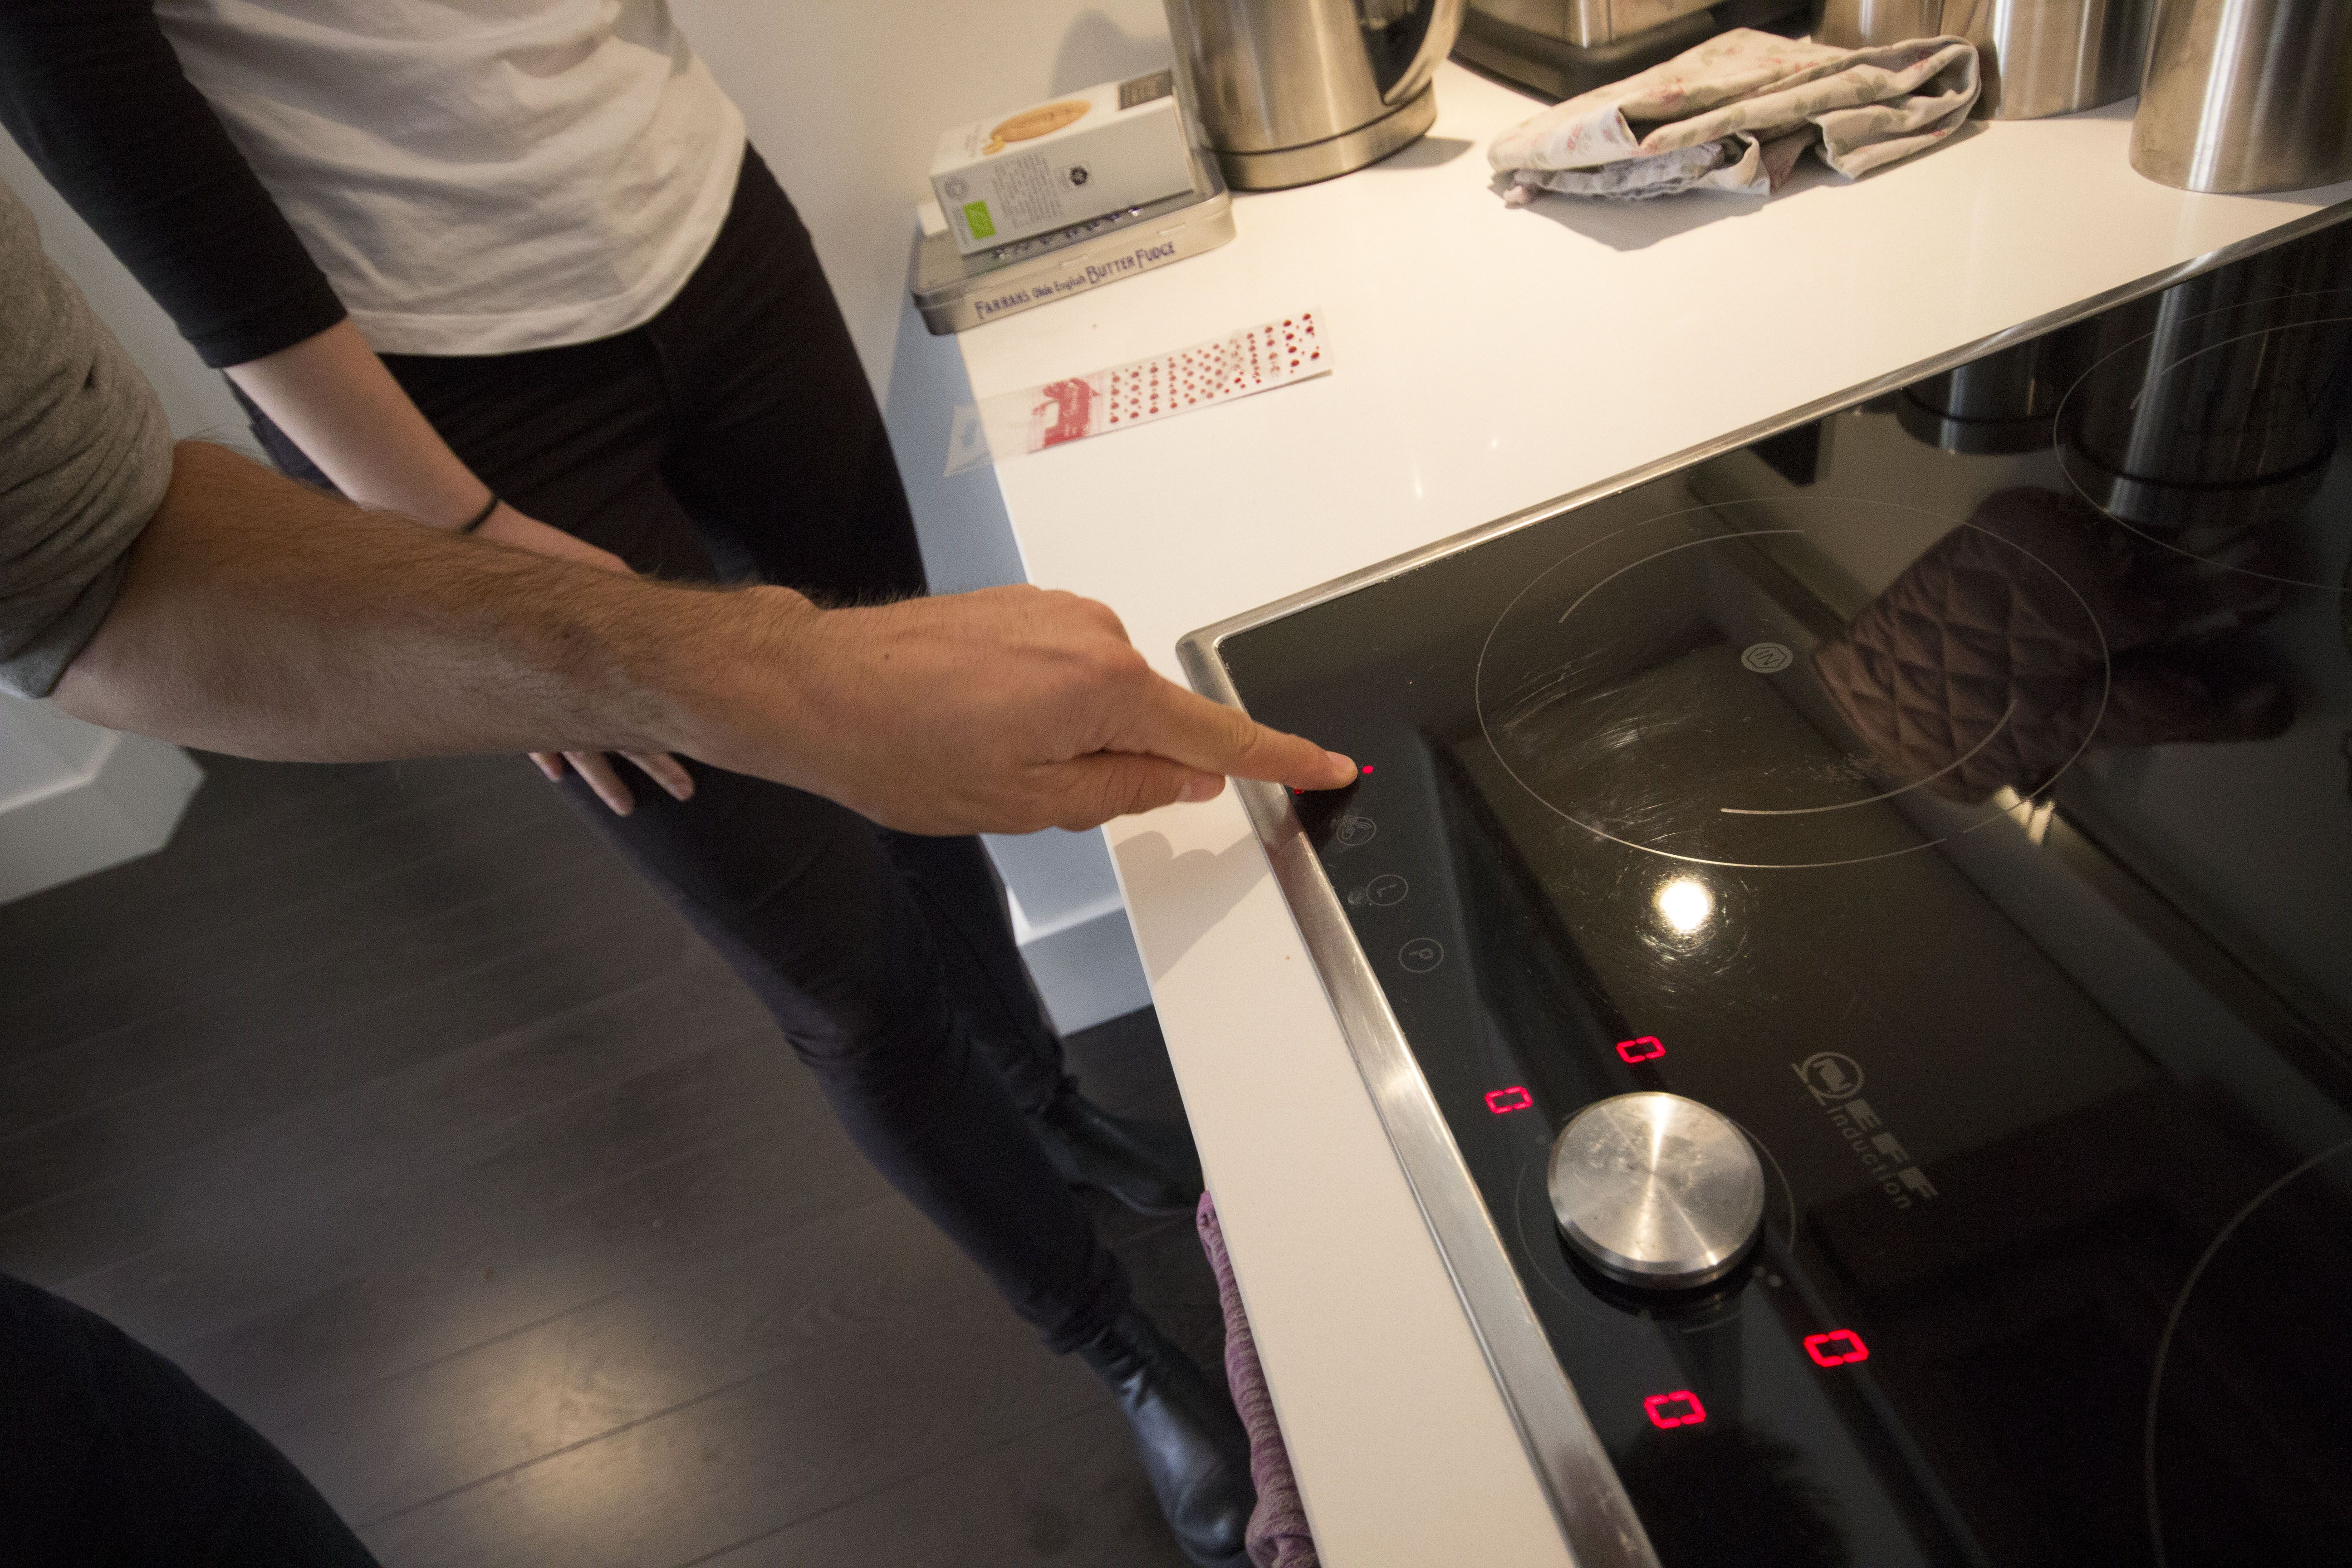 Trying out the raised sticker system on the convection hob